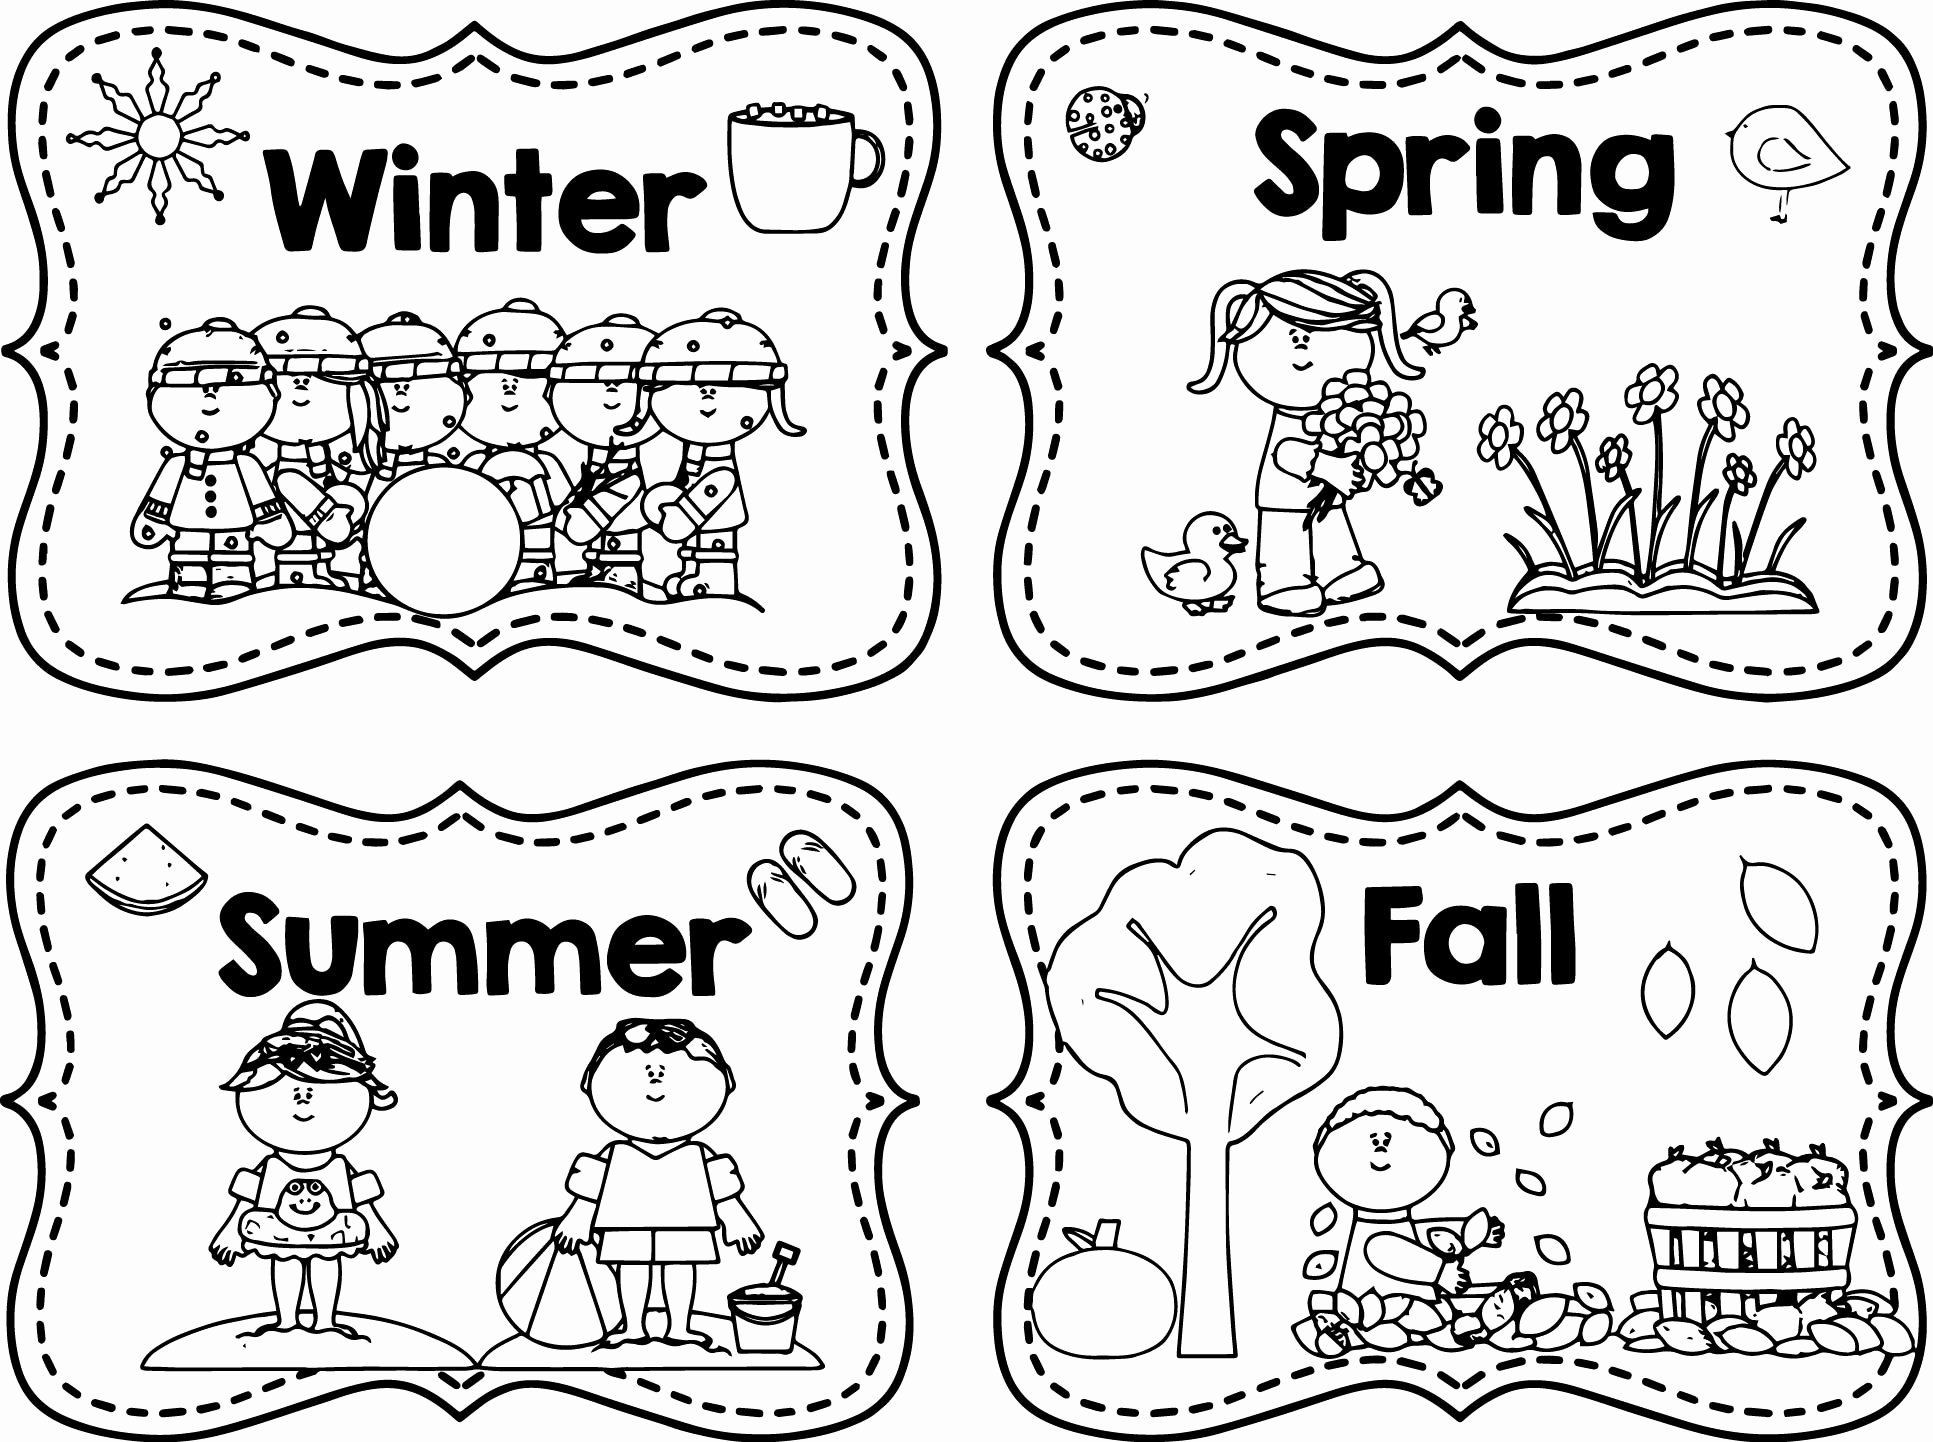 Seasons Worksheets for Preschoolers Coloring Winter Activities Preschool Beautiful Worksheets